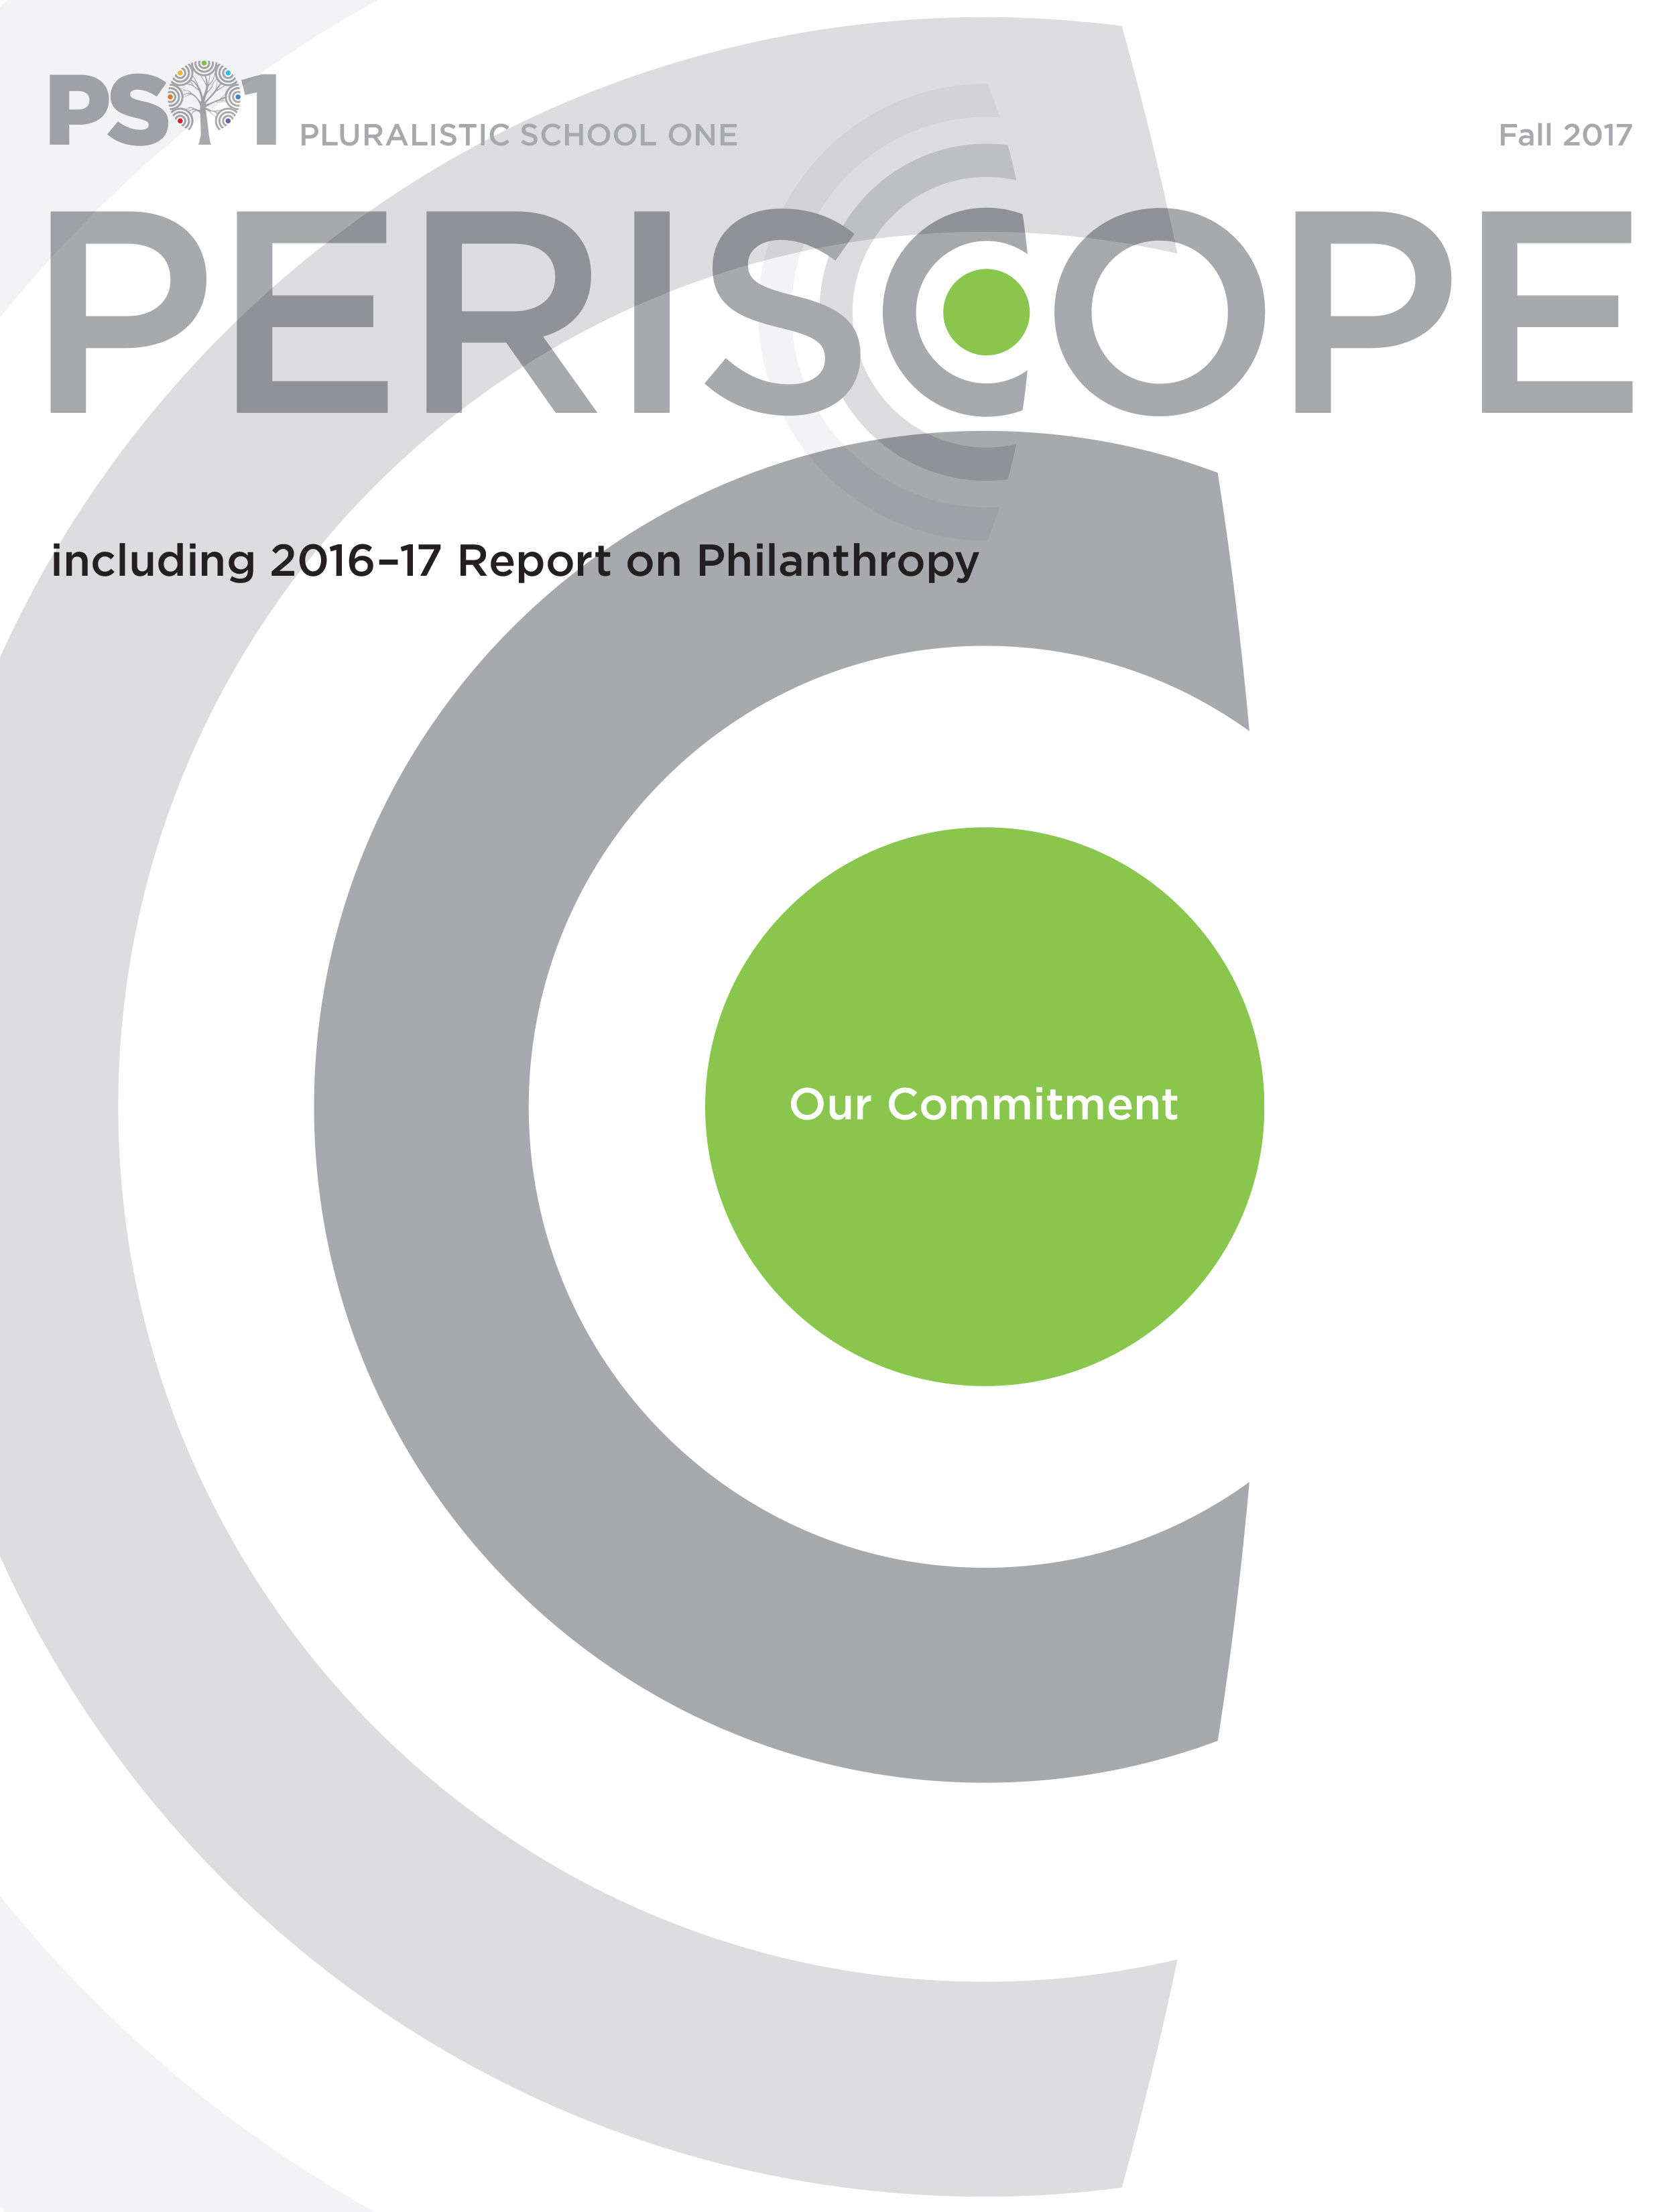 Fall 2017 PeriScope with Annual Report